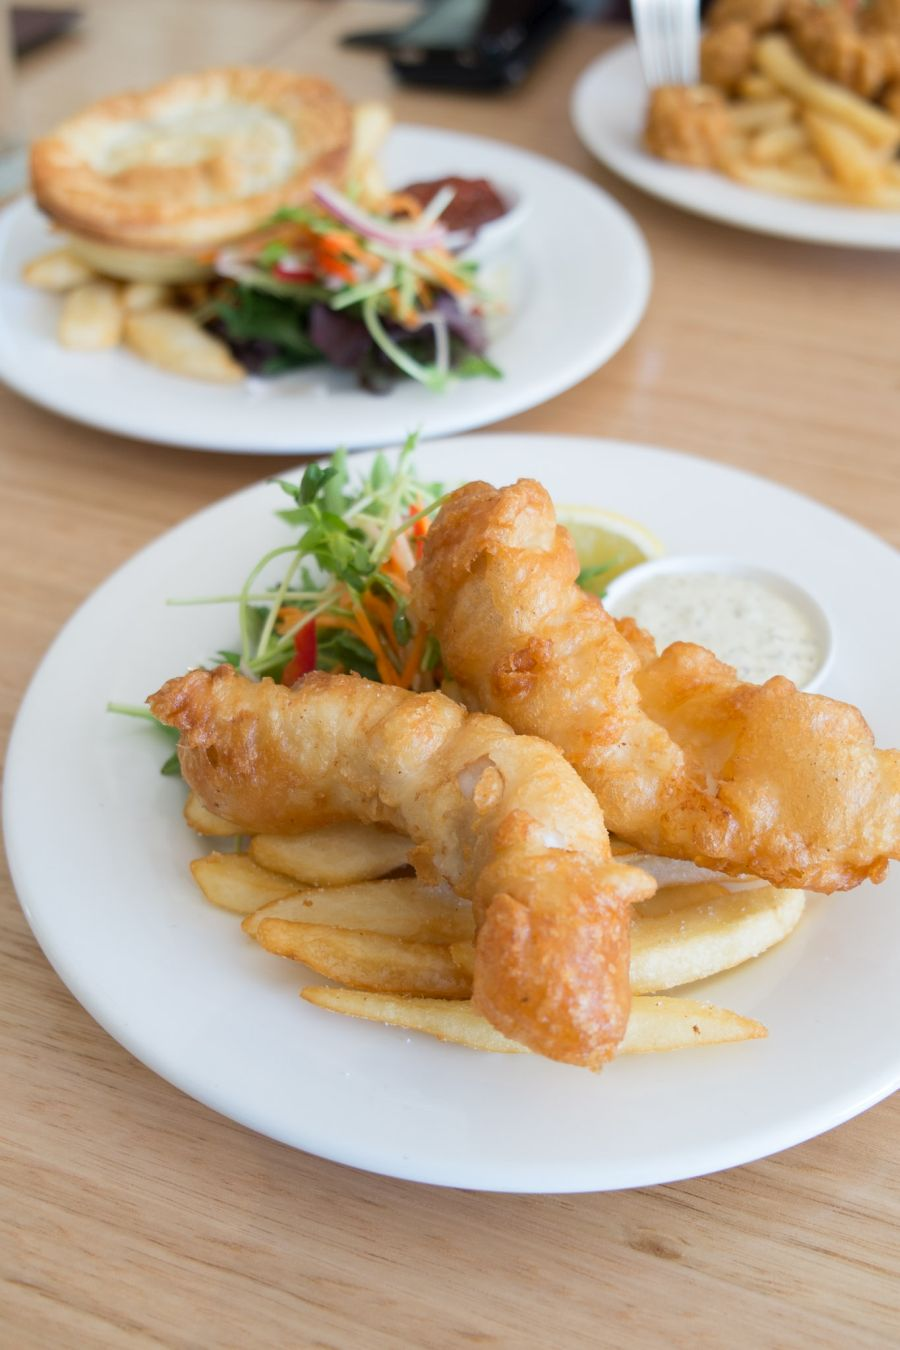 Cascade Draught beer battered fish fillets with salad and chips (AU$15 - tour menu)